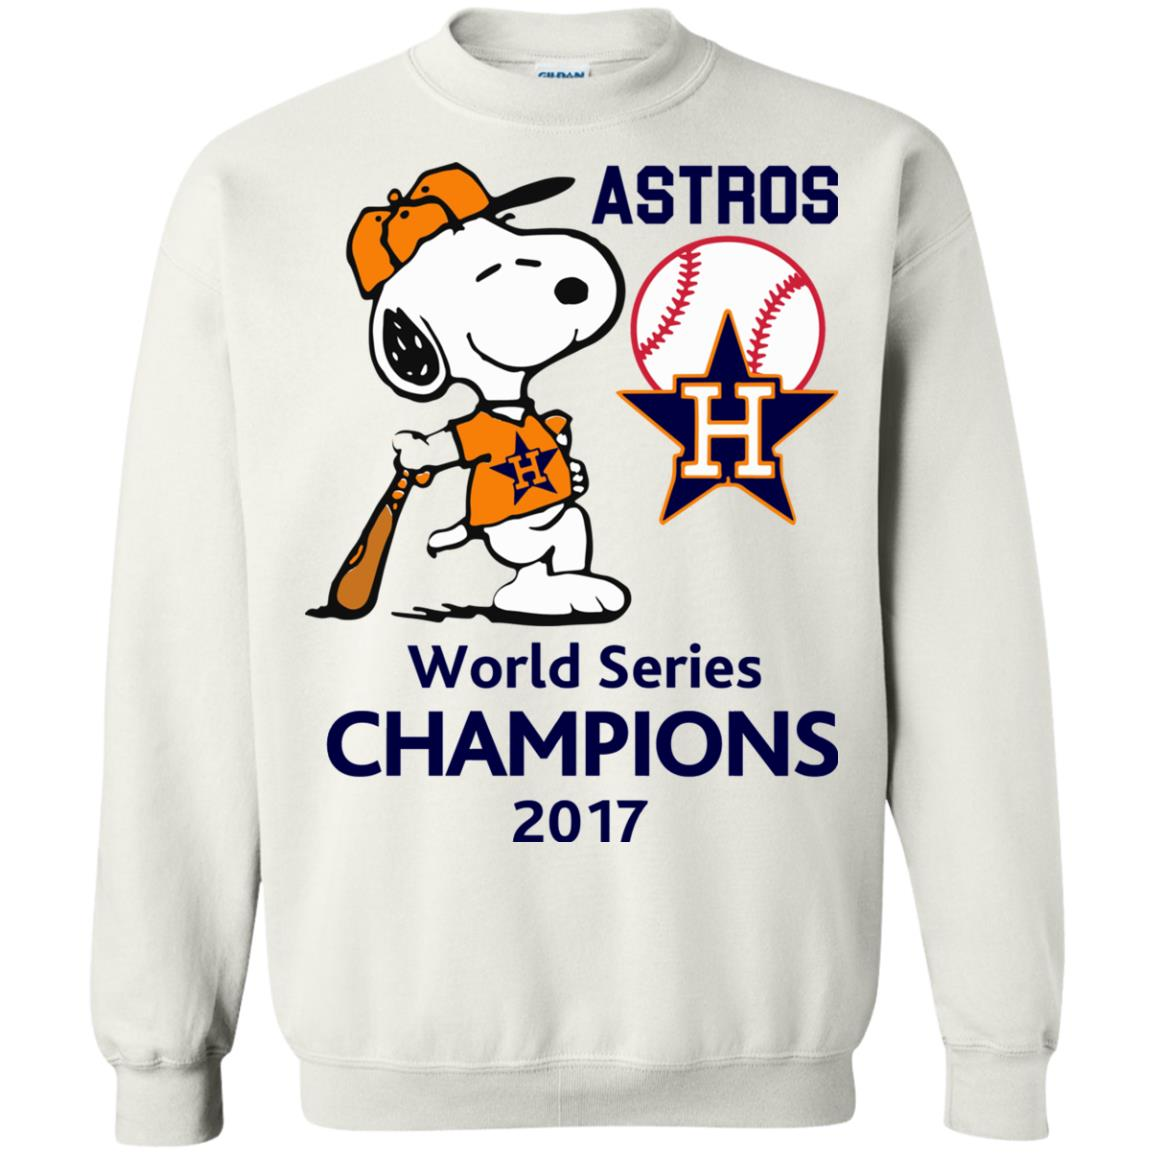 image 958 - Snoopy Astros World Series Champions Shirt, Sweater, Hoodie